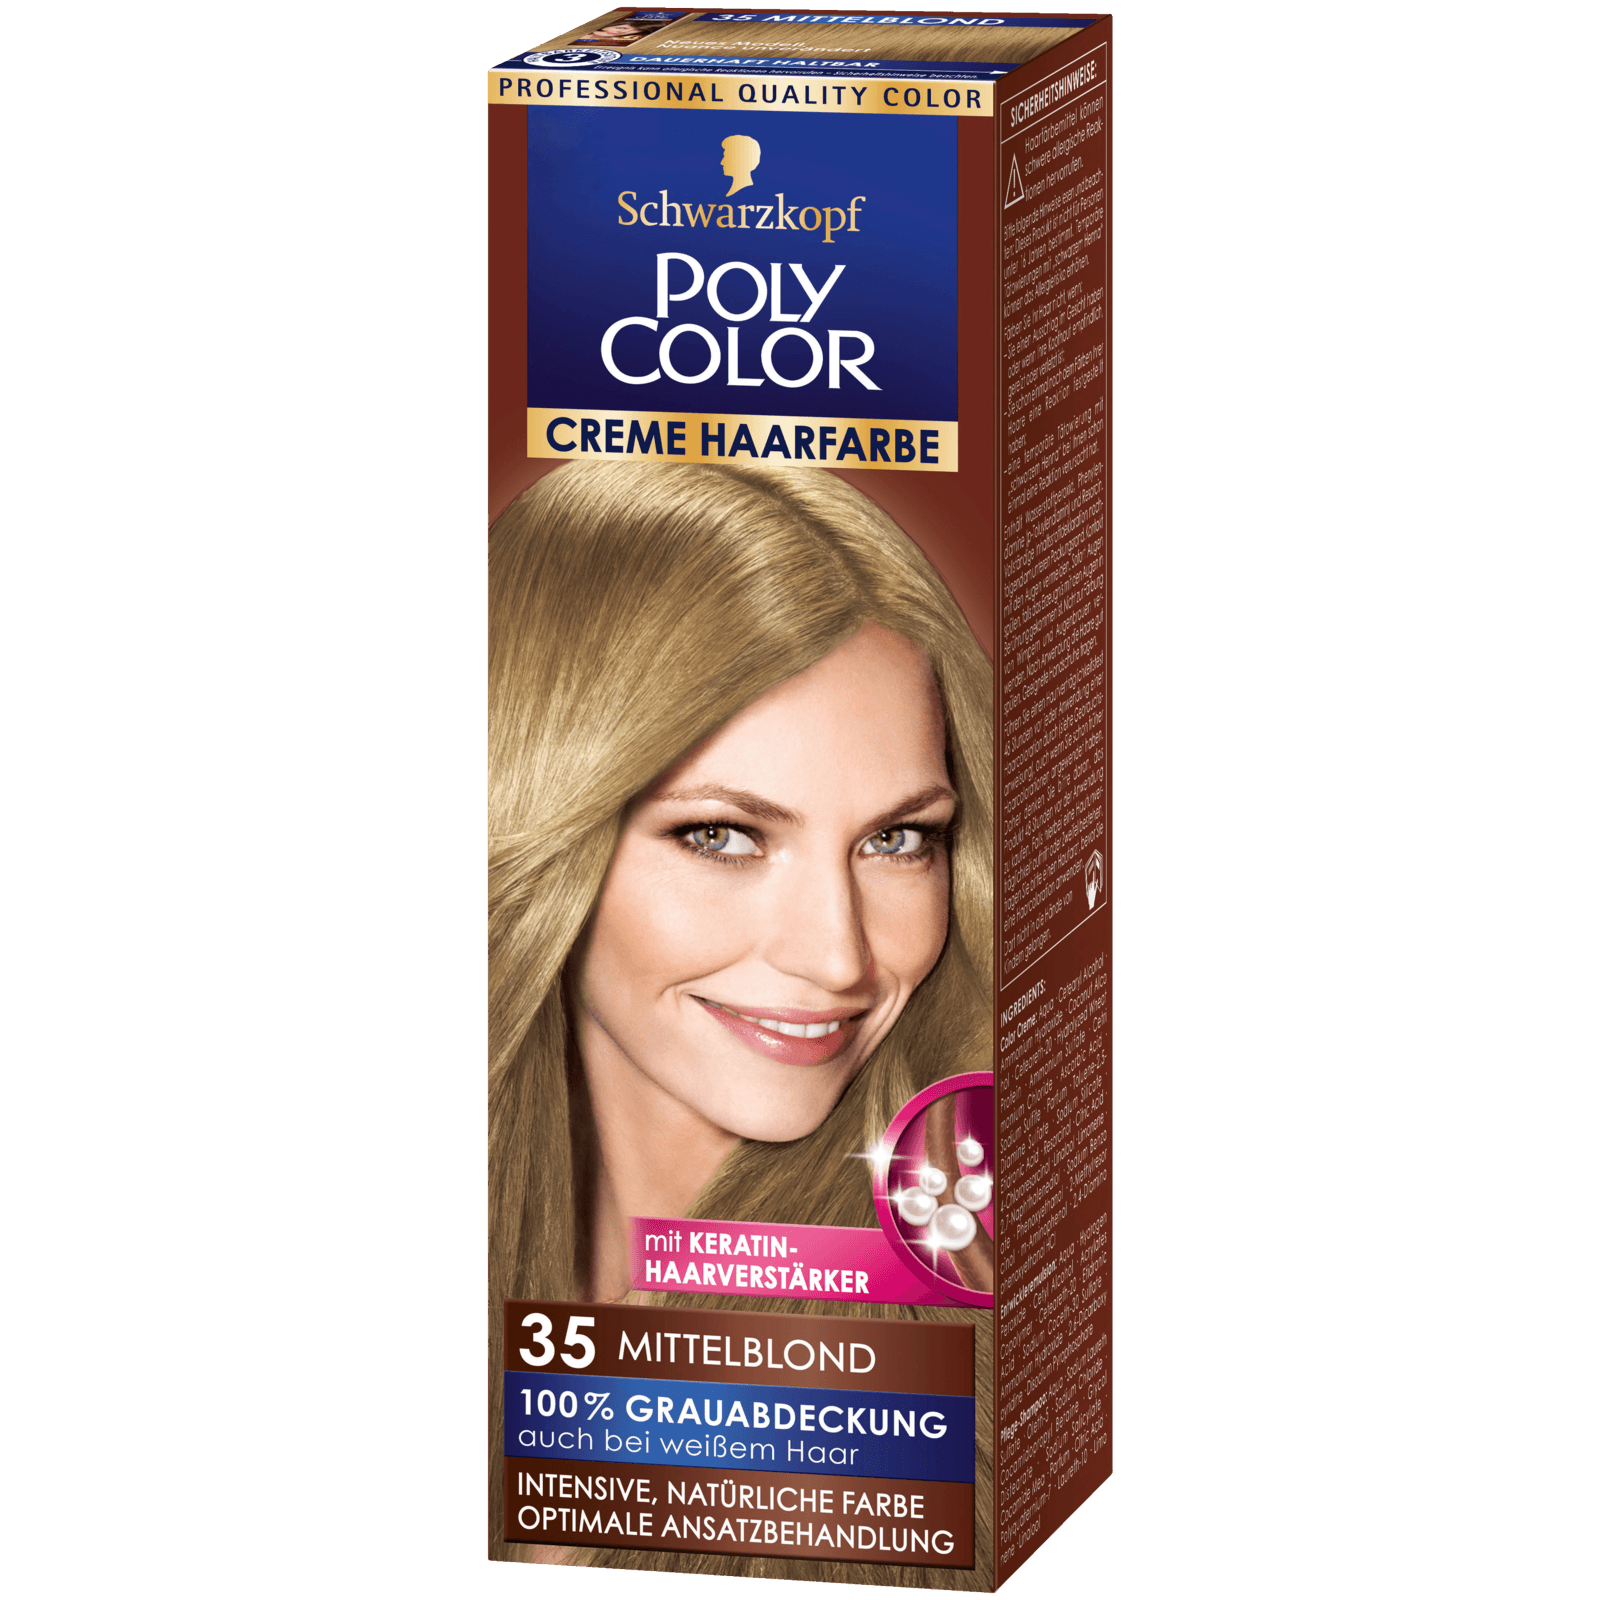 lila haarfarbe bestellen modische frisuren f r sie foto blog. Black Bedroom Furniture Sets. Home Design Ideas